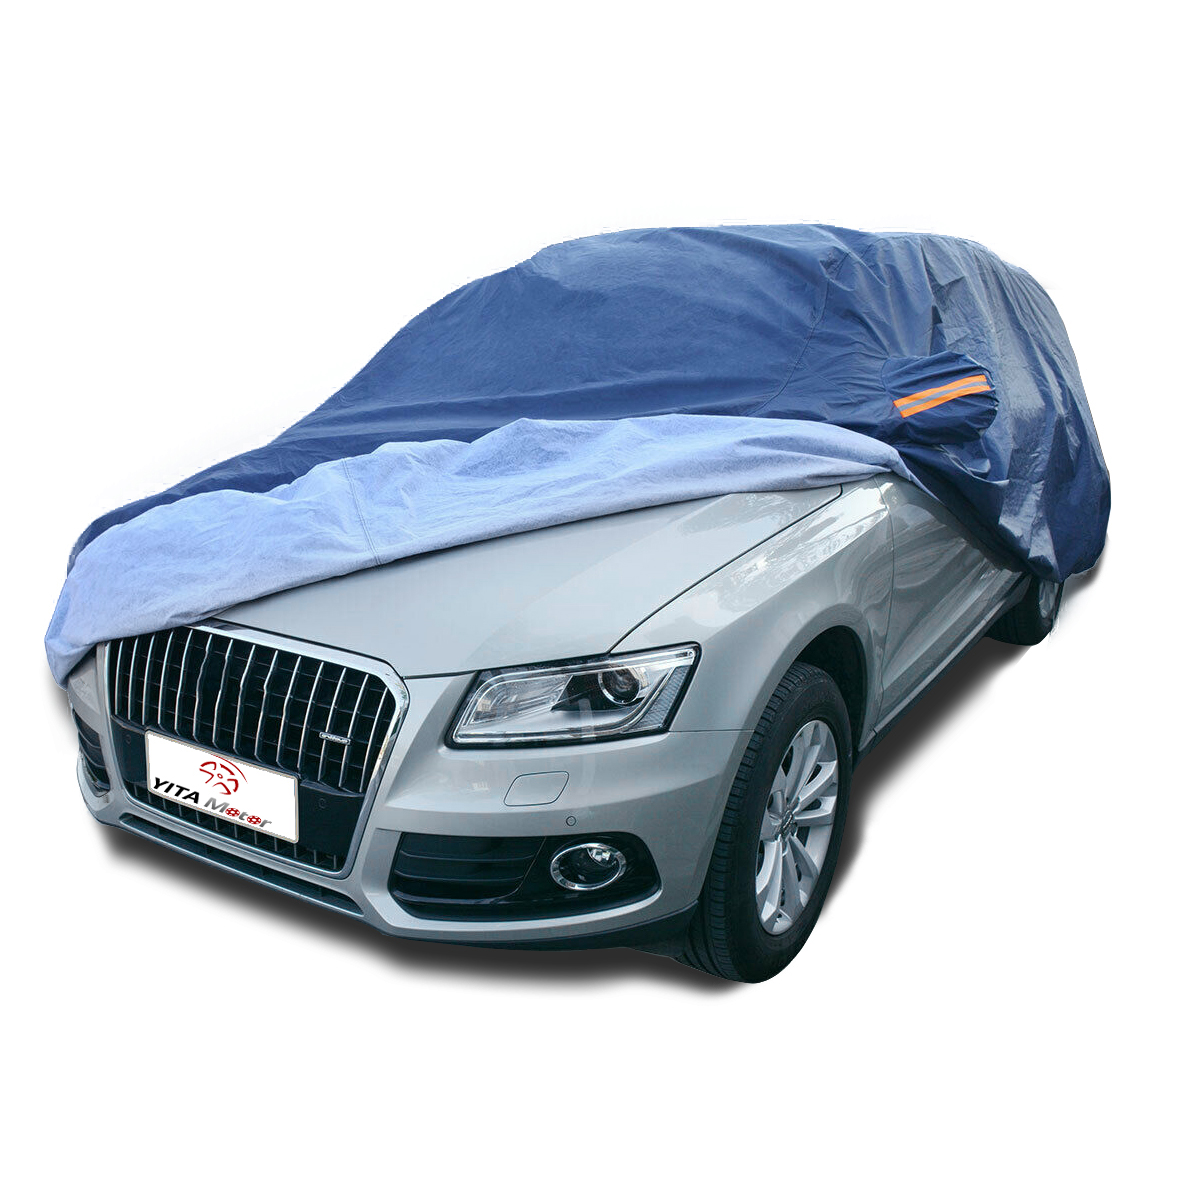 1997 1998 1999 2000 2001 Cadillac Catera Breathable Car Cover w//MirrorPocket